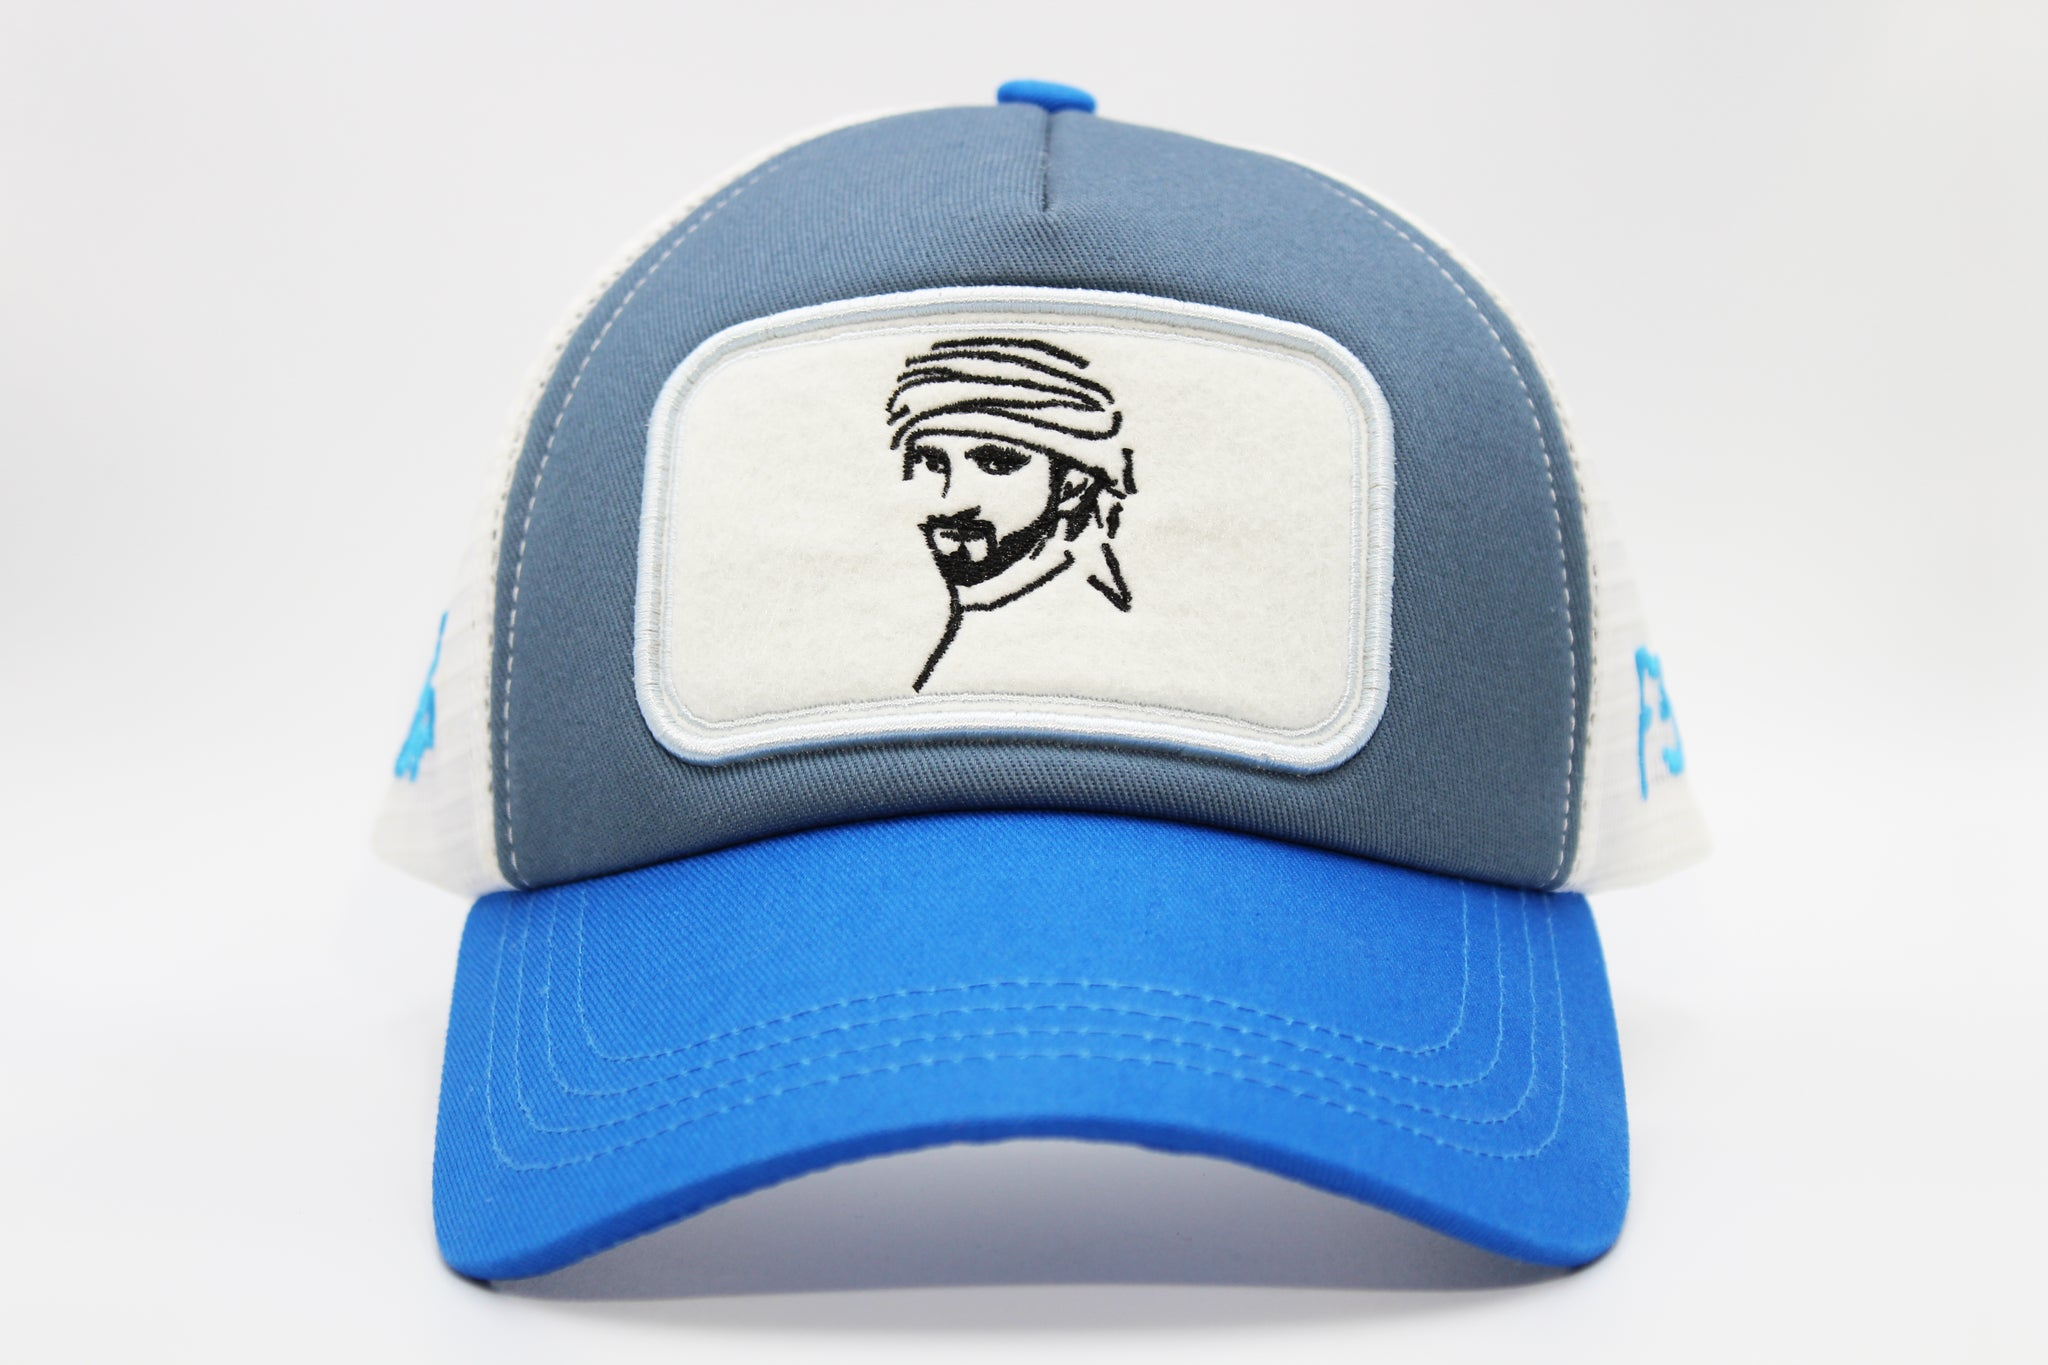 fazza f3 cap by Foxerz front-side view